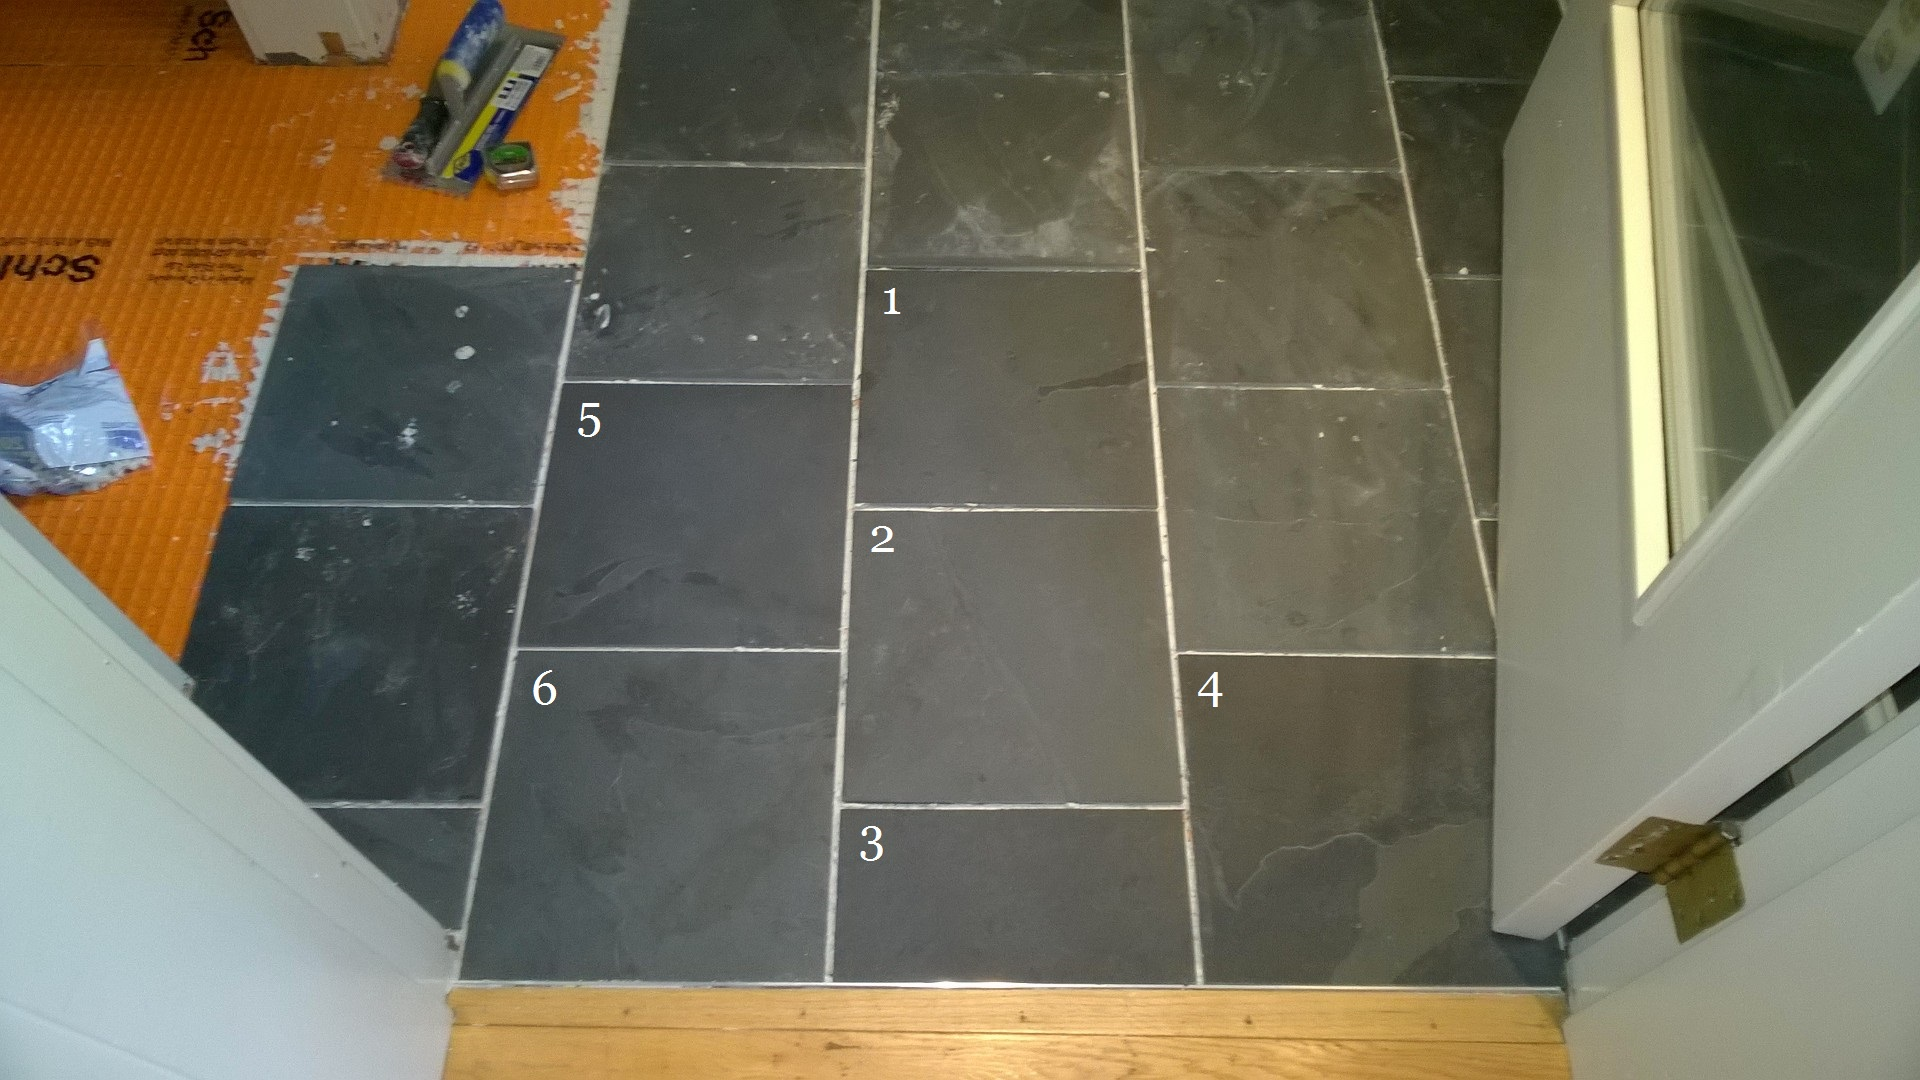 Removing grout from tile floor